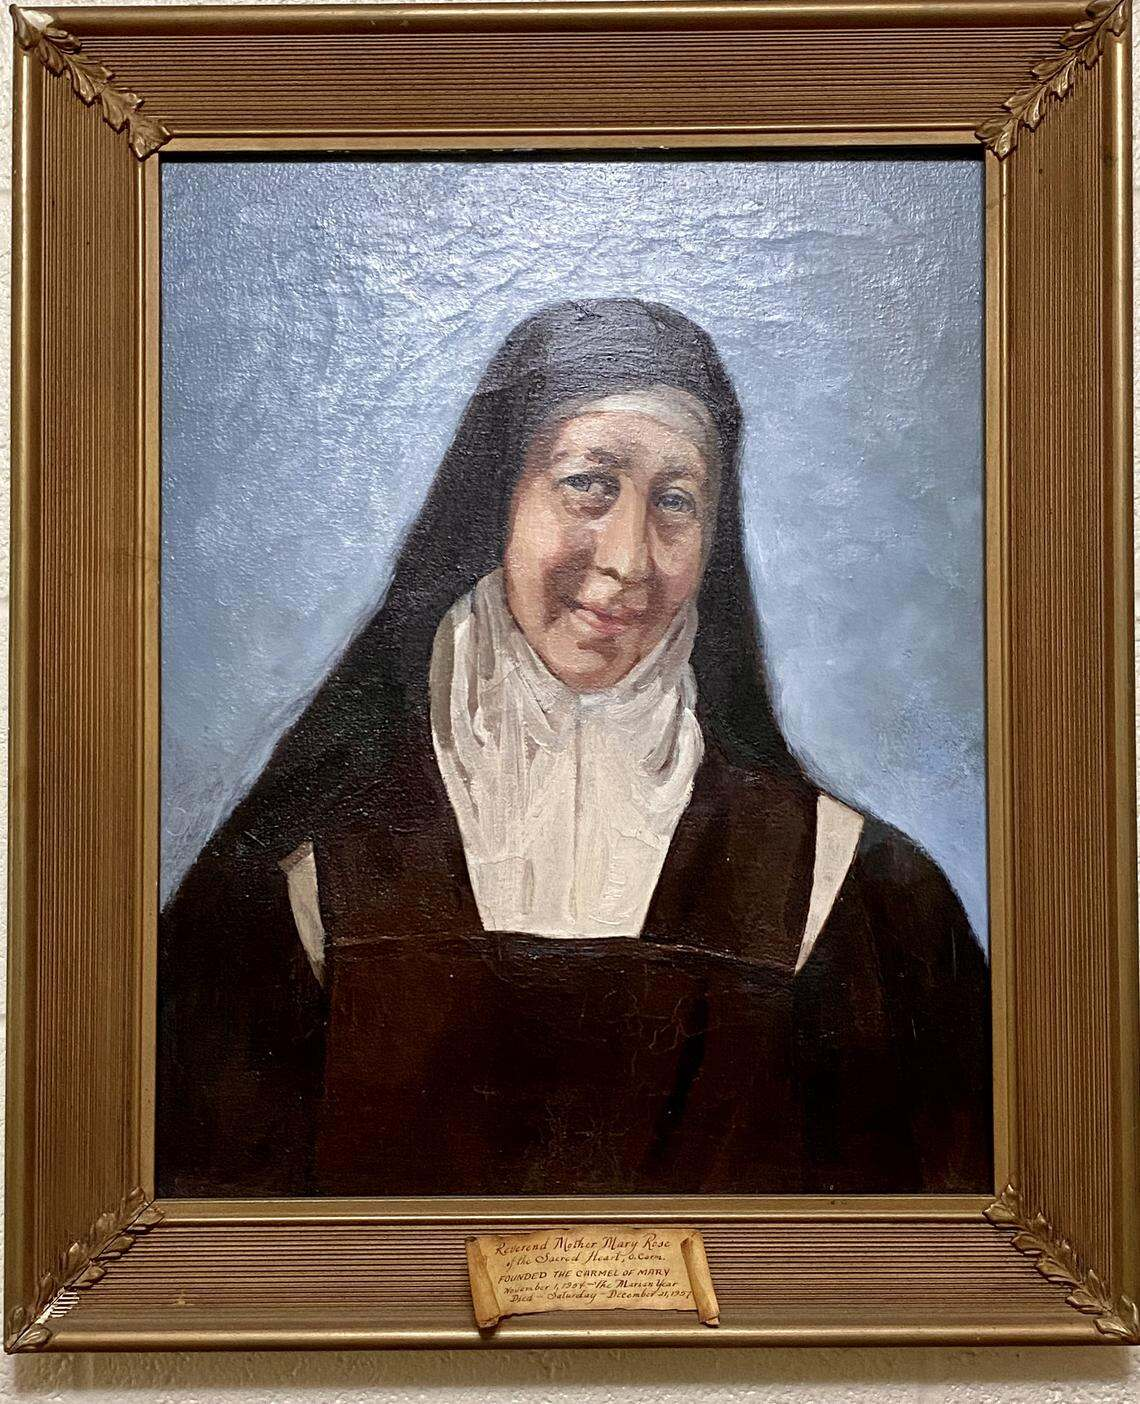 A painting of the Rev. Mother Mary Rose, foundress of the Carmel of Mary Monastery, Nov. 1, 1954, which hangs in one of the visiting rooms inside the cloister in Wahpeton, N.D. Roxane Salonen / The Forum